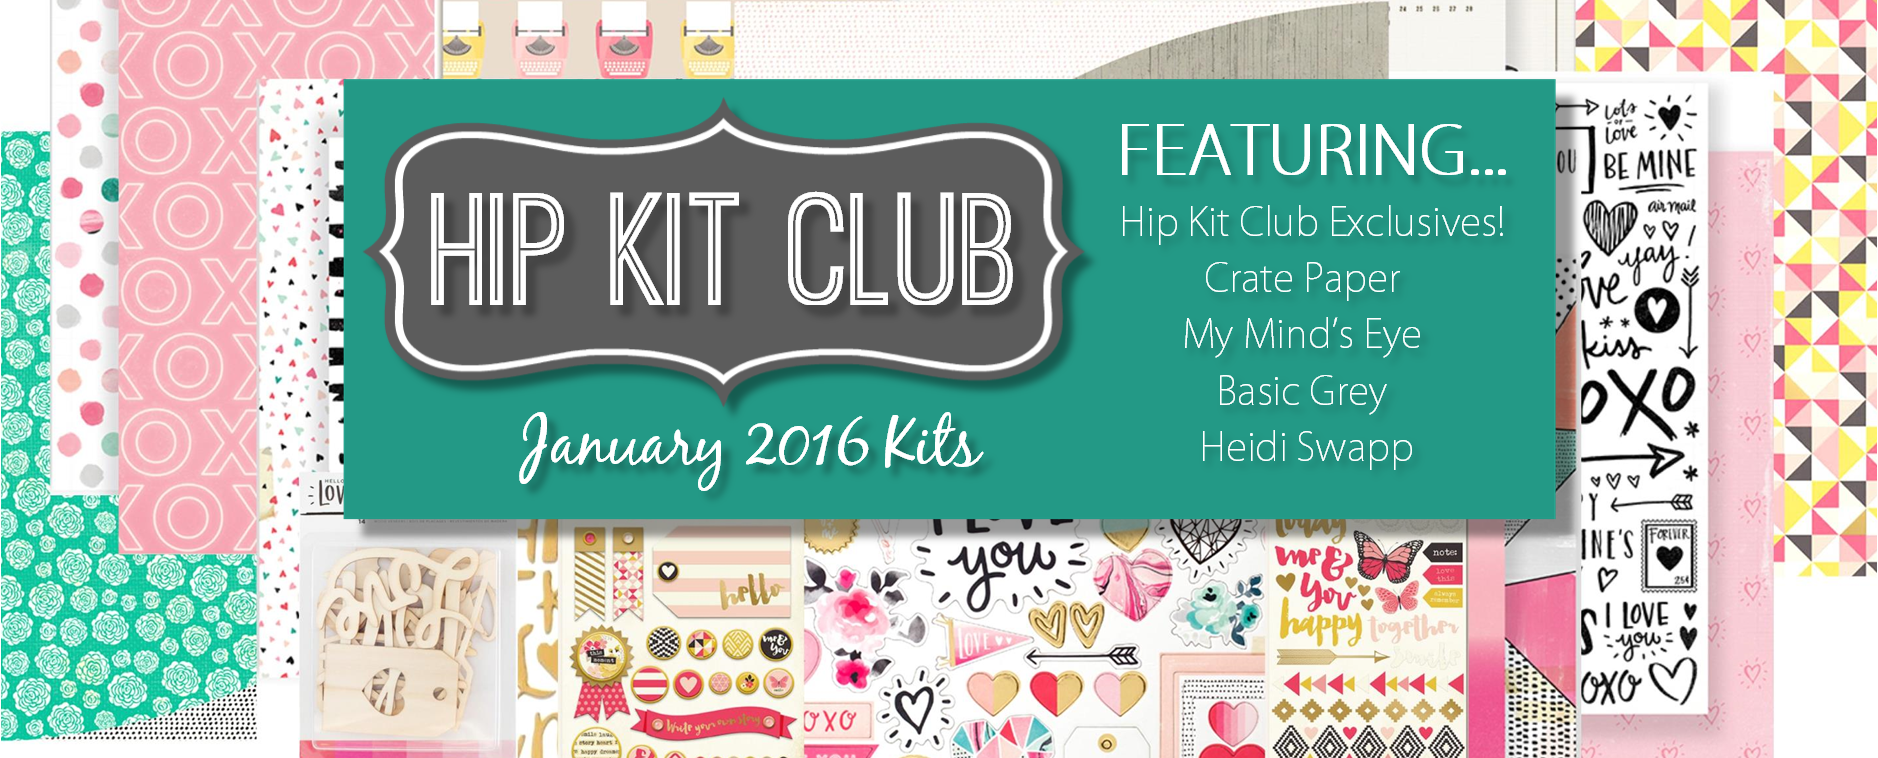 January 2016 Hip Kit